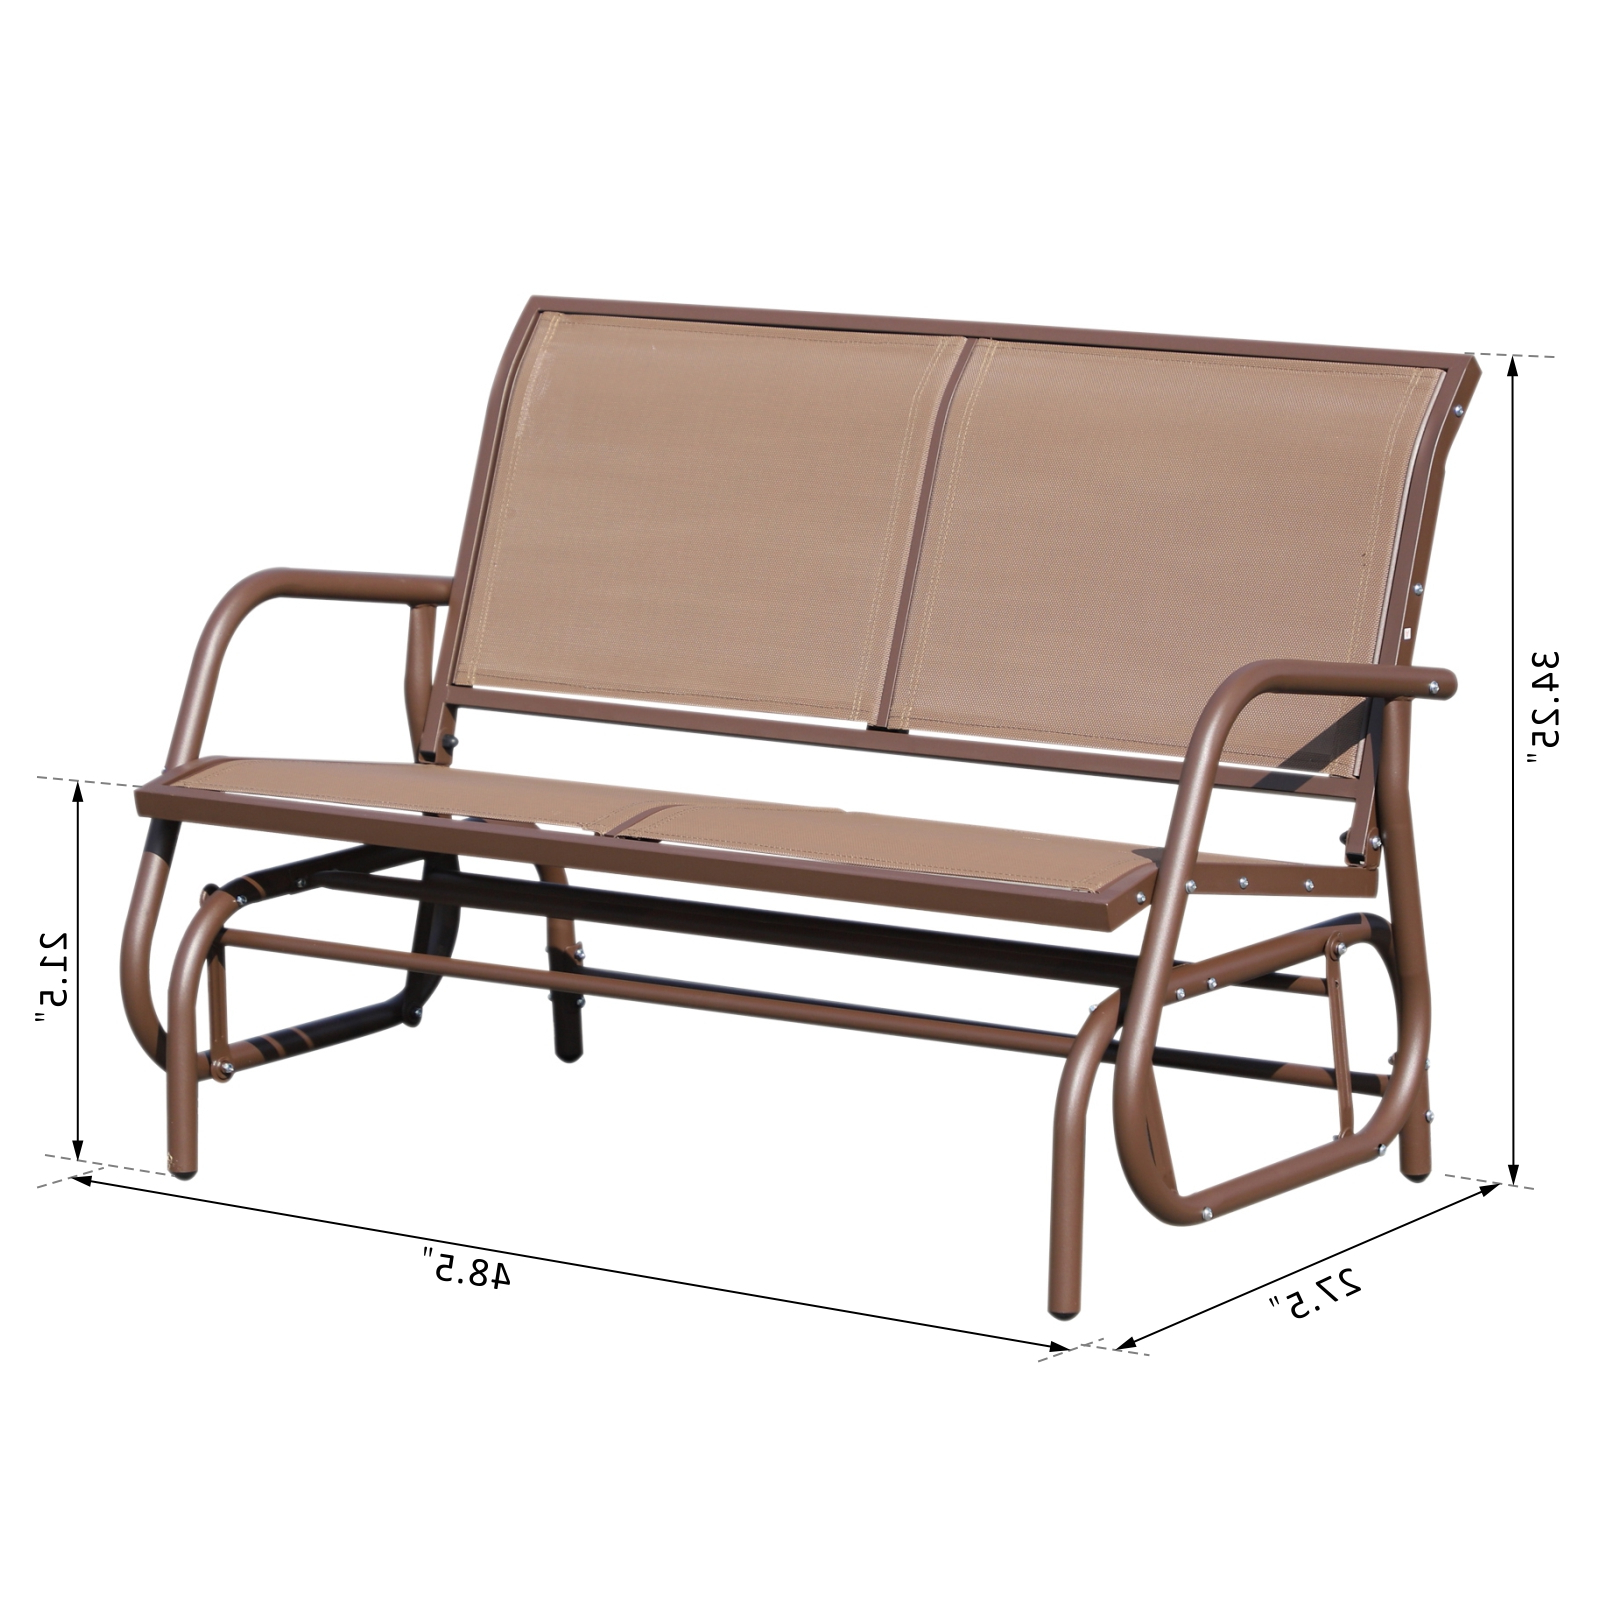 Trendy Sling Double Glider Benches Regarding Outsunny Patio Double Glider Outdoor Steel Sling Fabric Bench Swing Chair R  Heavy Duty Porch Rocker Garden Loveseat Brown (Gallery 25 of 30)